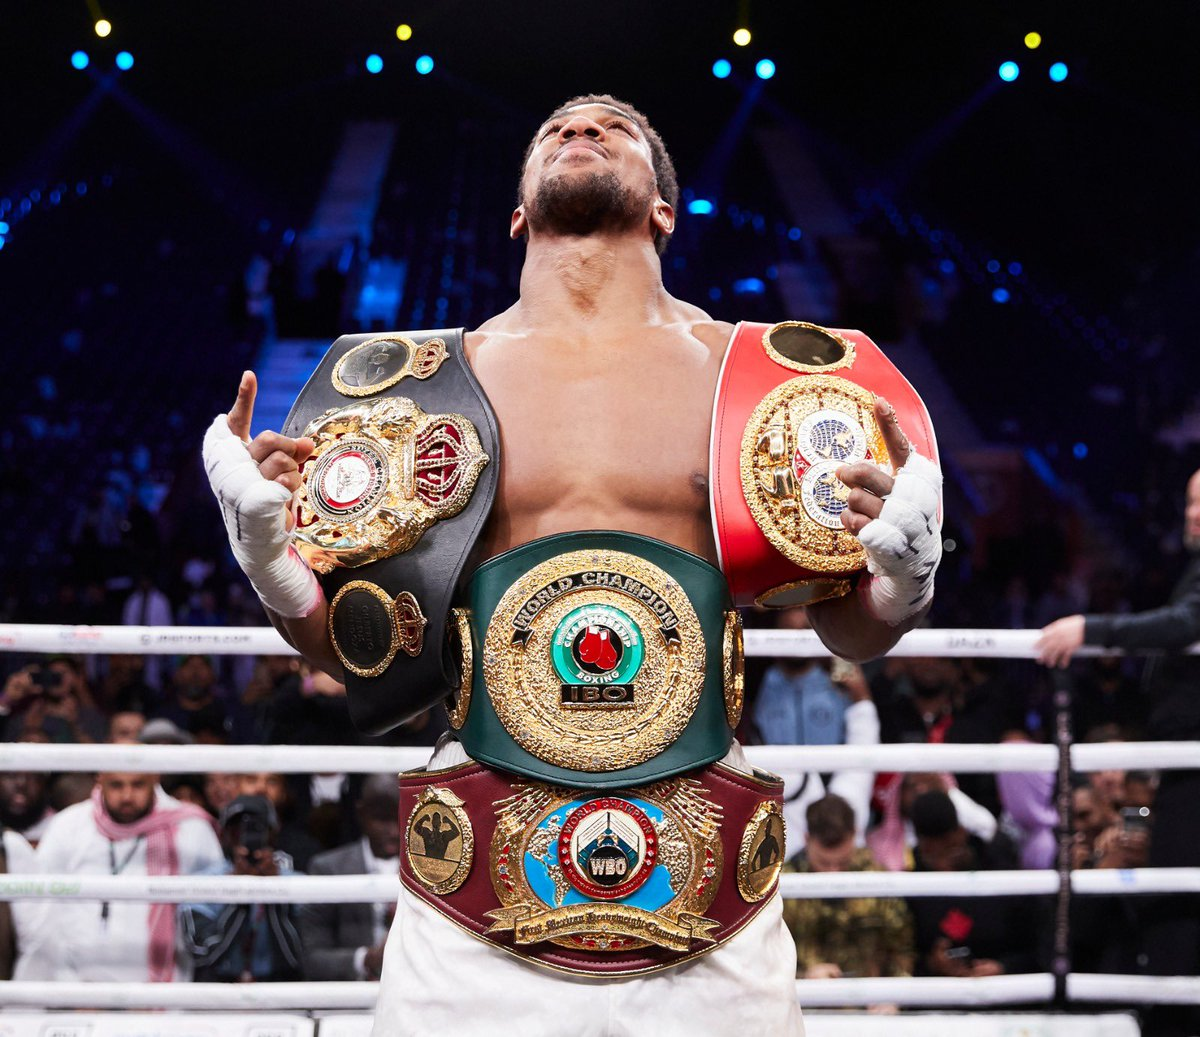 Sports Minister Congratulates Anthony Joshua On Ruiz Victory